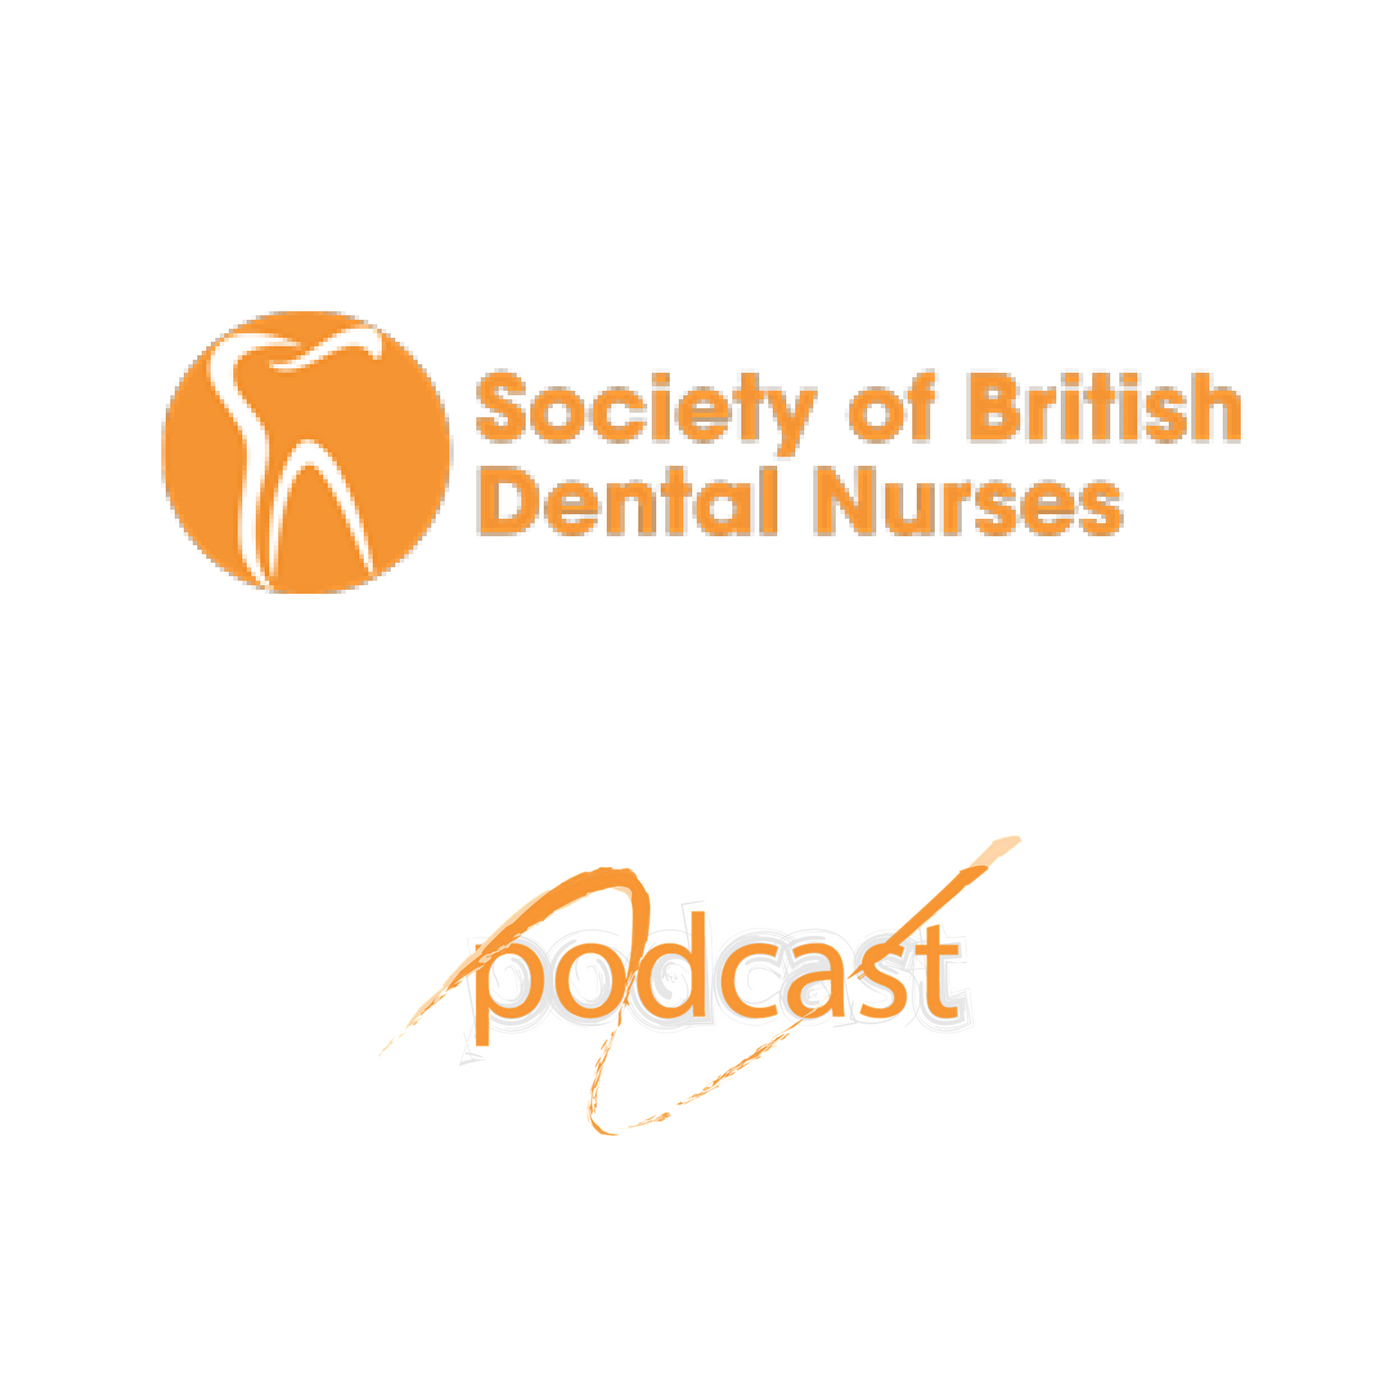 The Society of British Dental Nurses Podcast